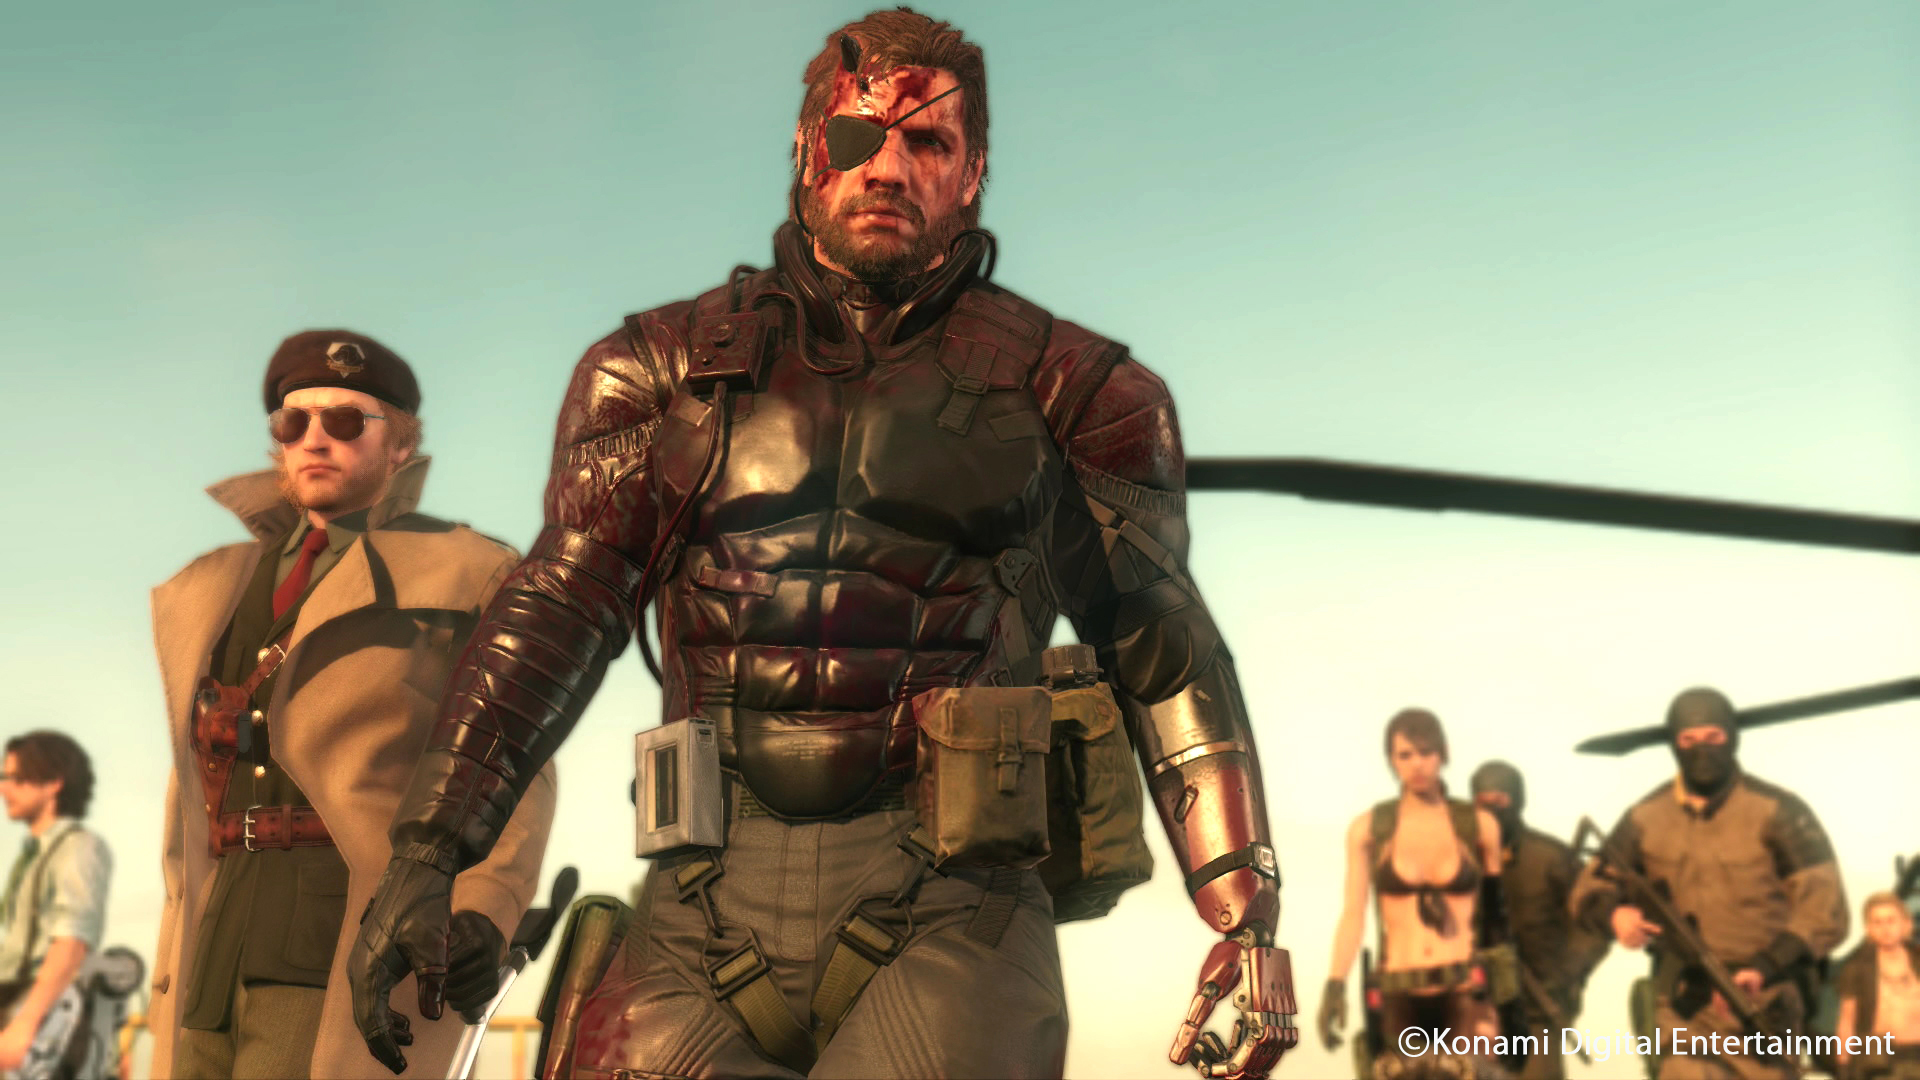 Metal-Gear-Solid-V-The-Phantom-Pain-screenshot-(22)